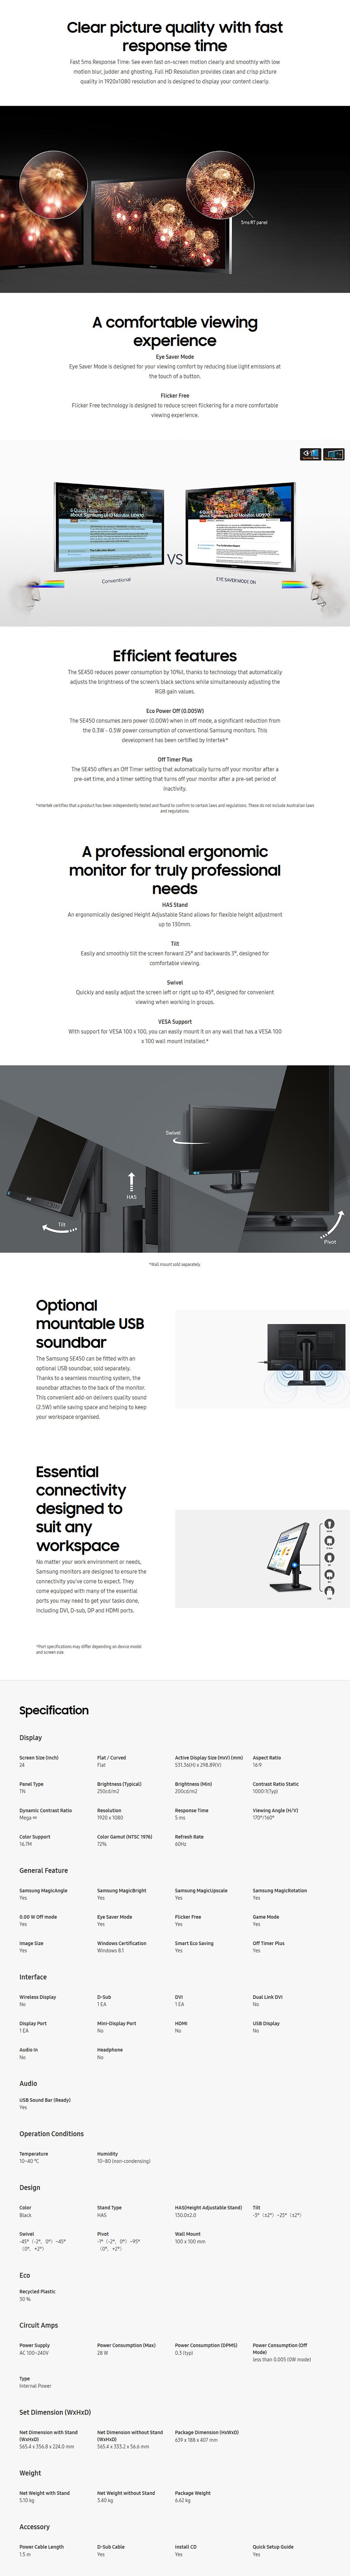 """A large marketing image providing additional information about the product Samsung SE450 23.6"""" Full HD 5MS LED Business Monitor - Additional alt info not provided"""